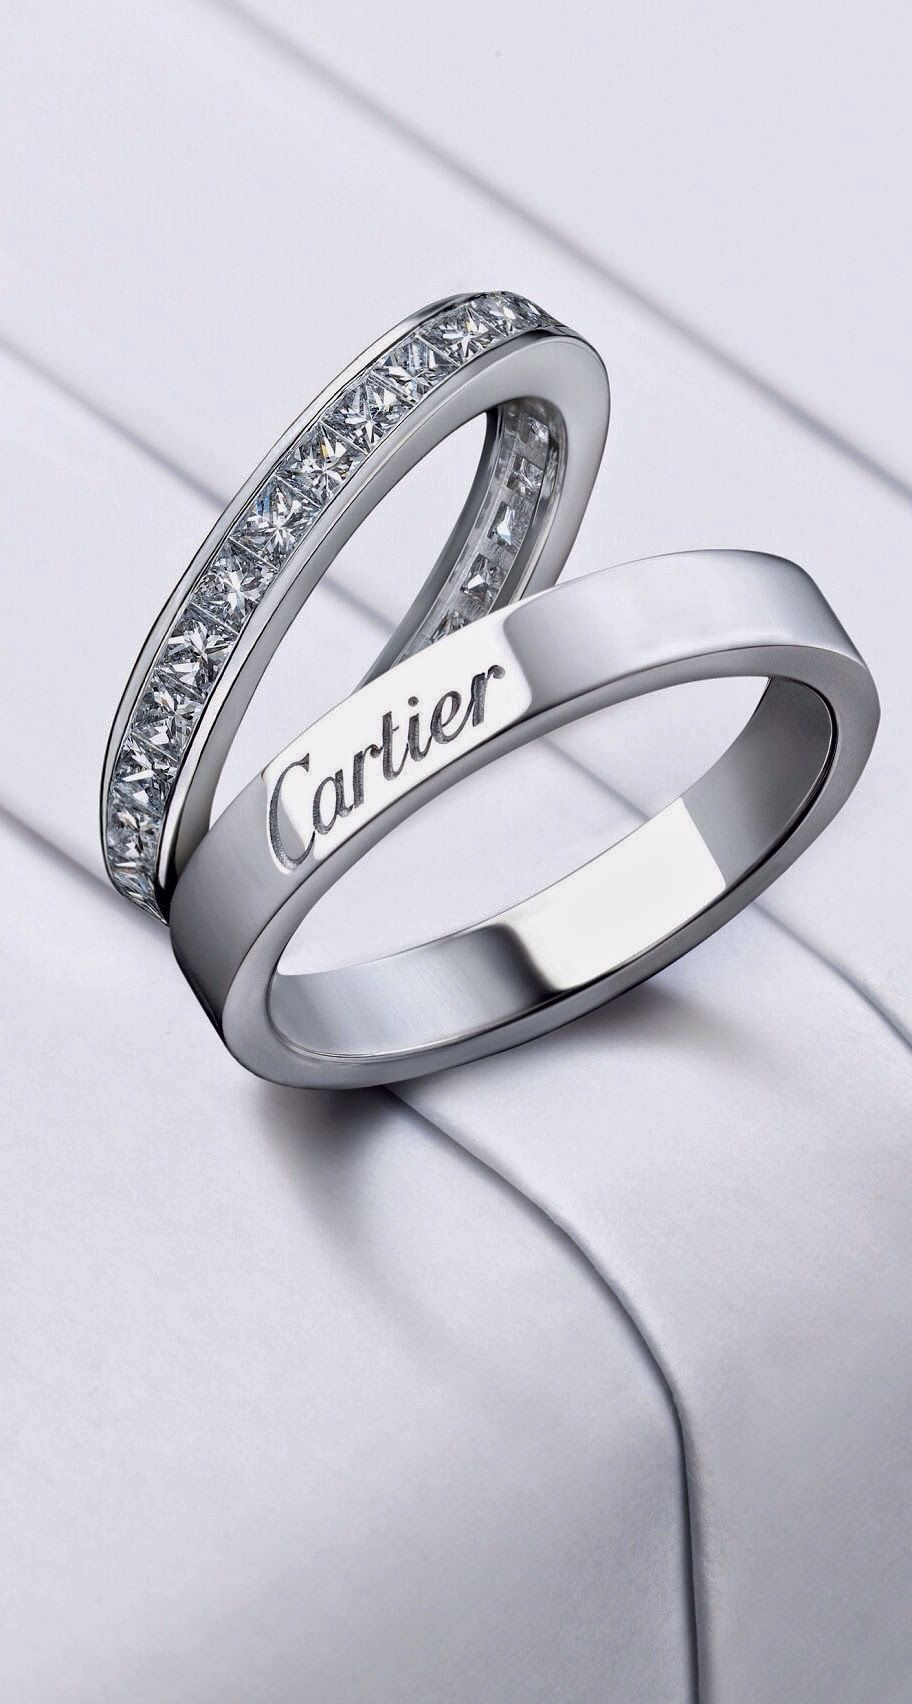 Cartier wedding rings wedding bands pinterest cartier wedding cartier wedding rings junglespirit Choice Image